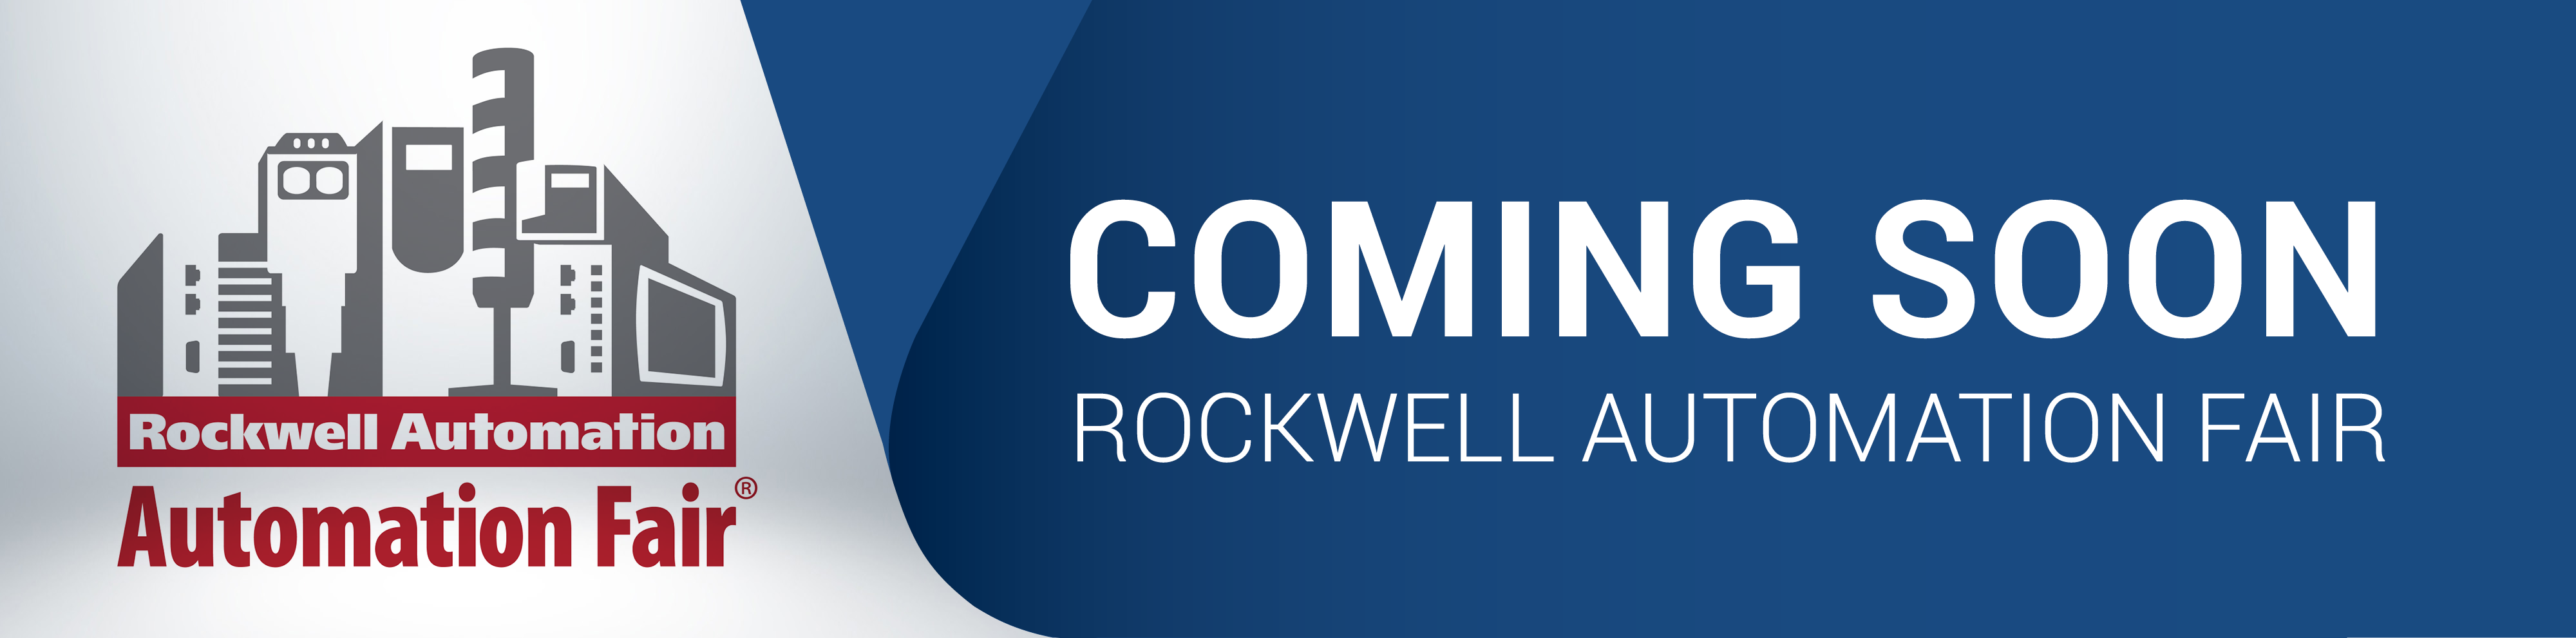 2018 Rockwell Automation Fair Coming Soon!